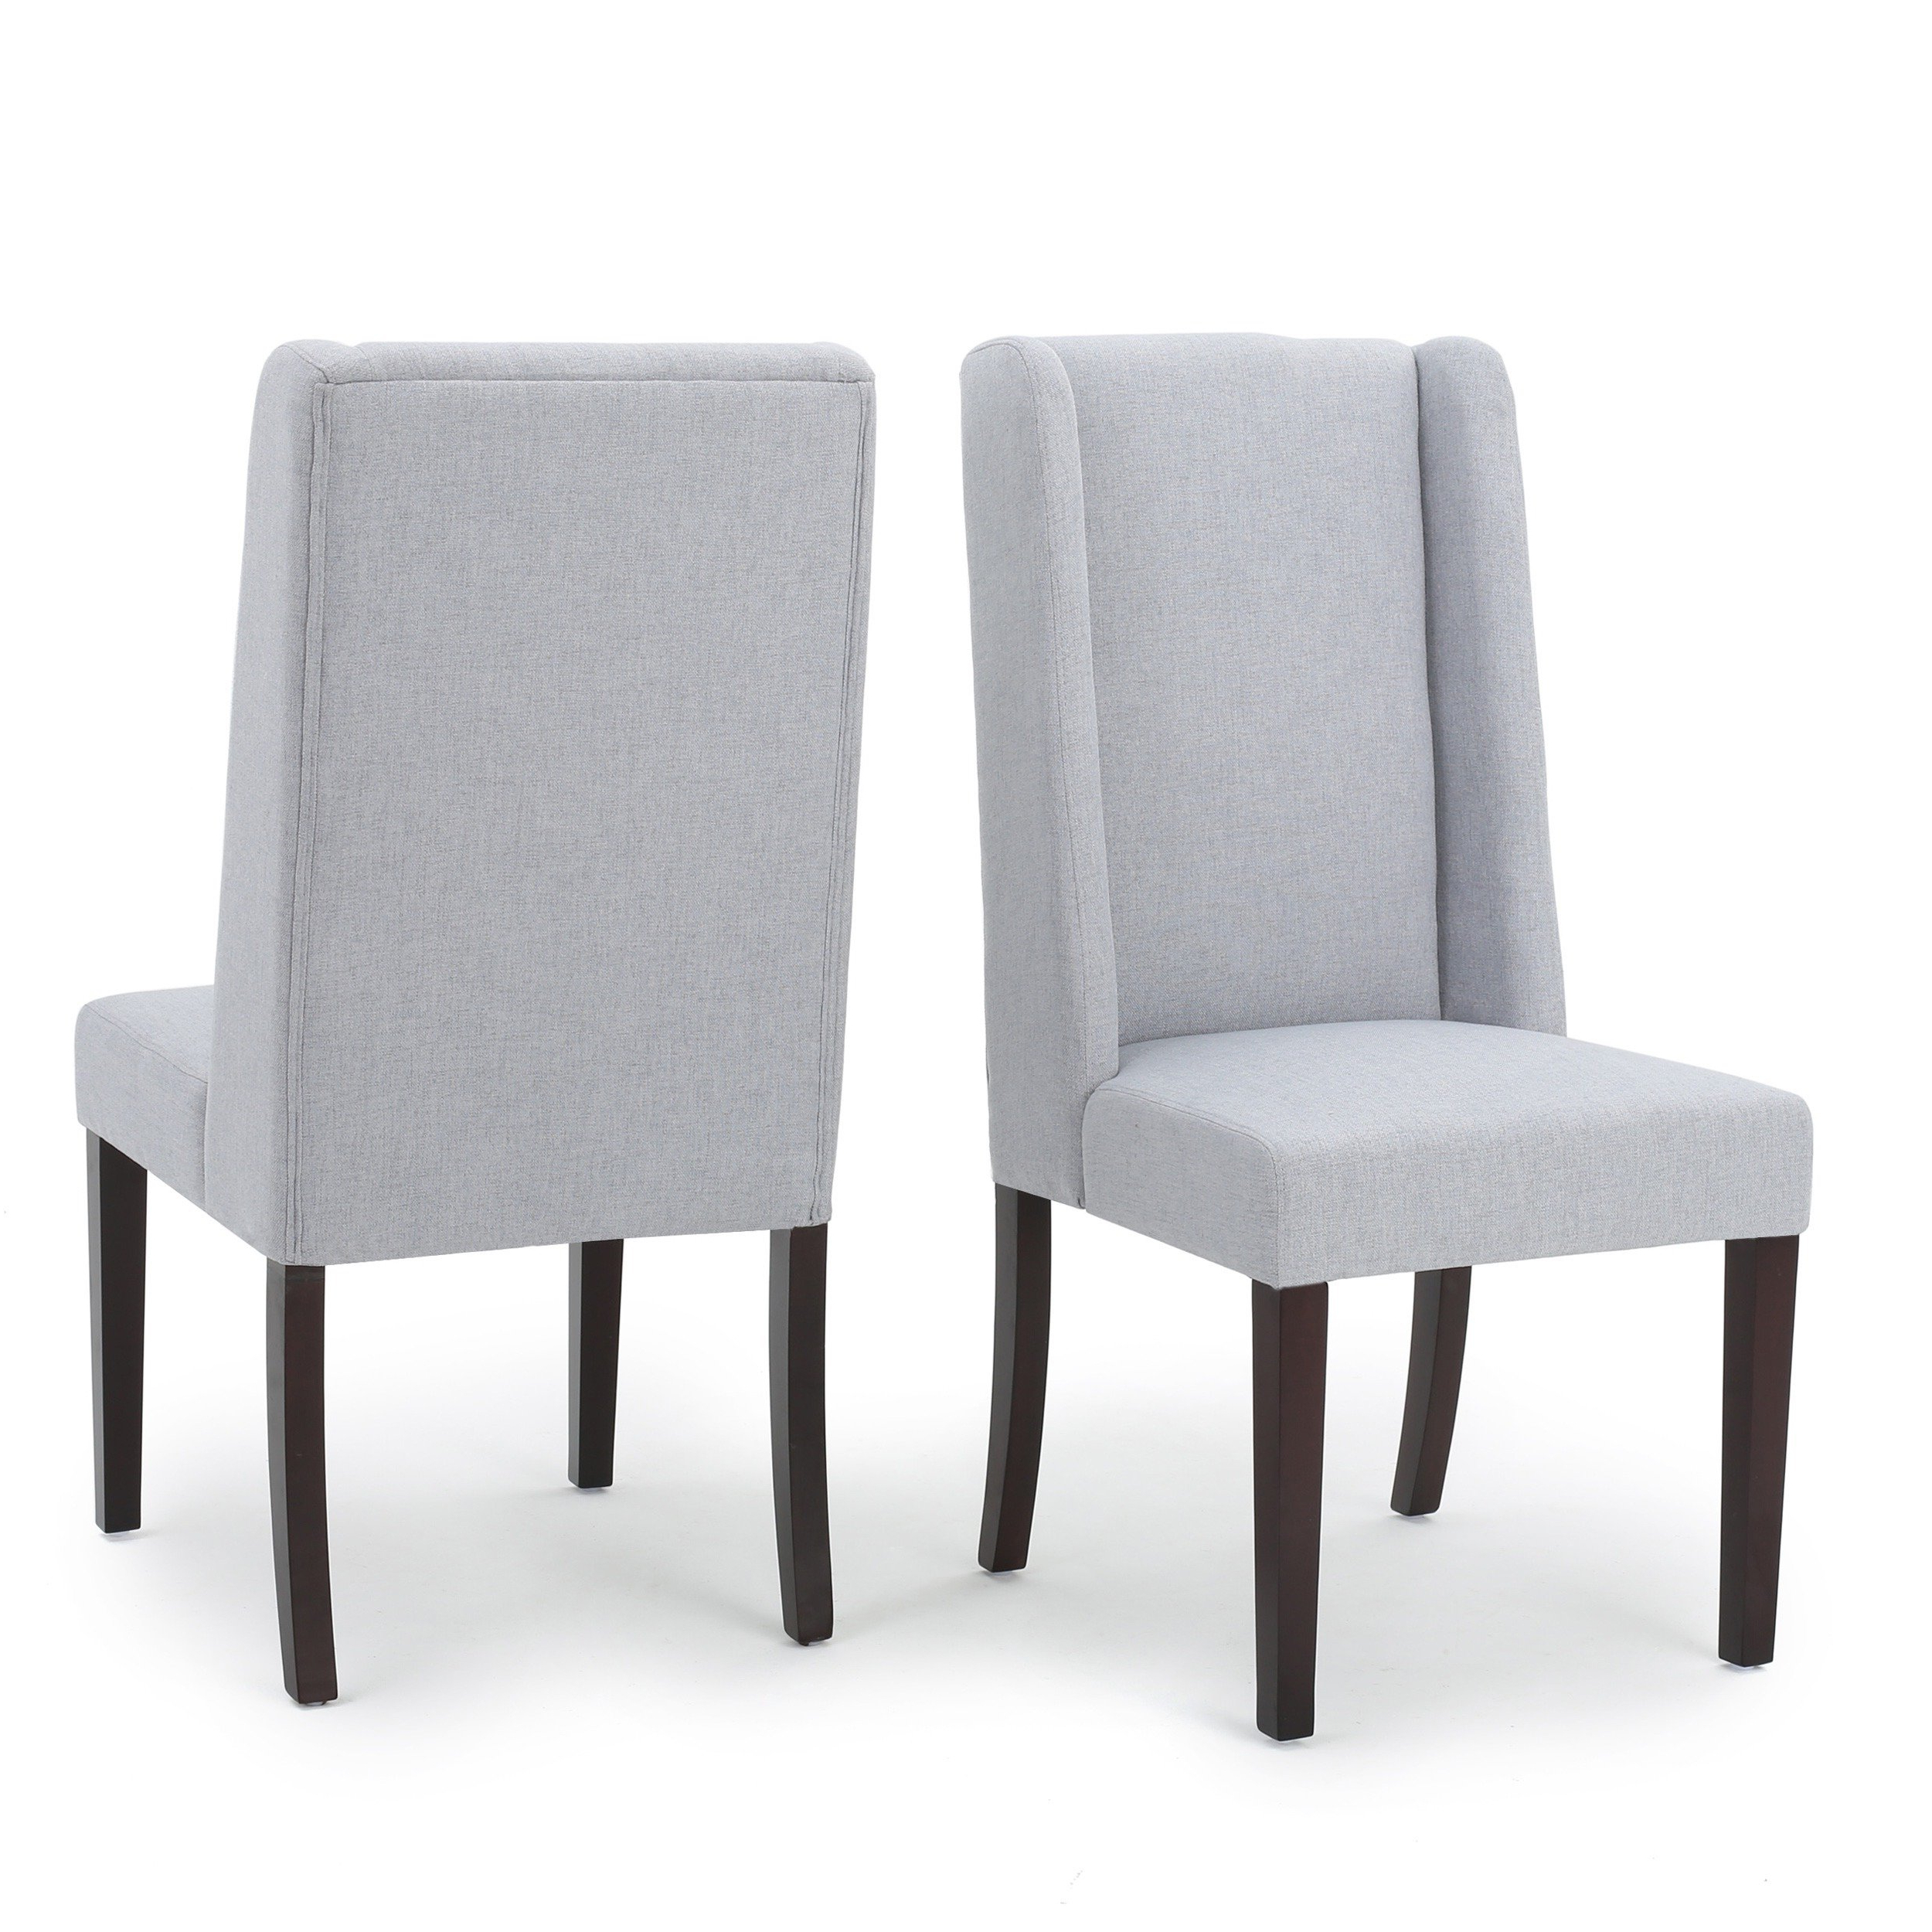 Most Current Rory Sofa Chairs Within Shop Rory Wing Back Fabric Dining Chair (set Of 2)christopher (View 17 of 20)